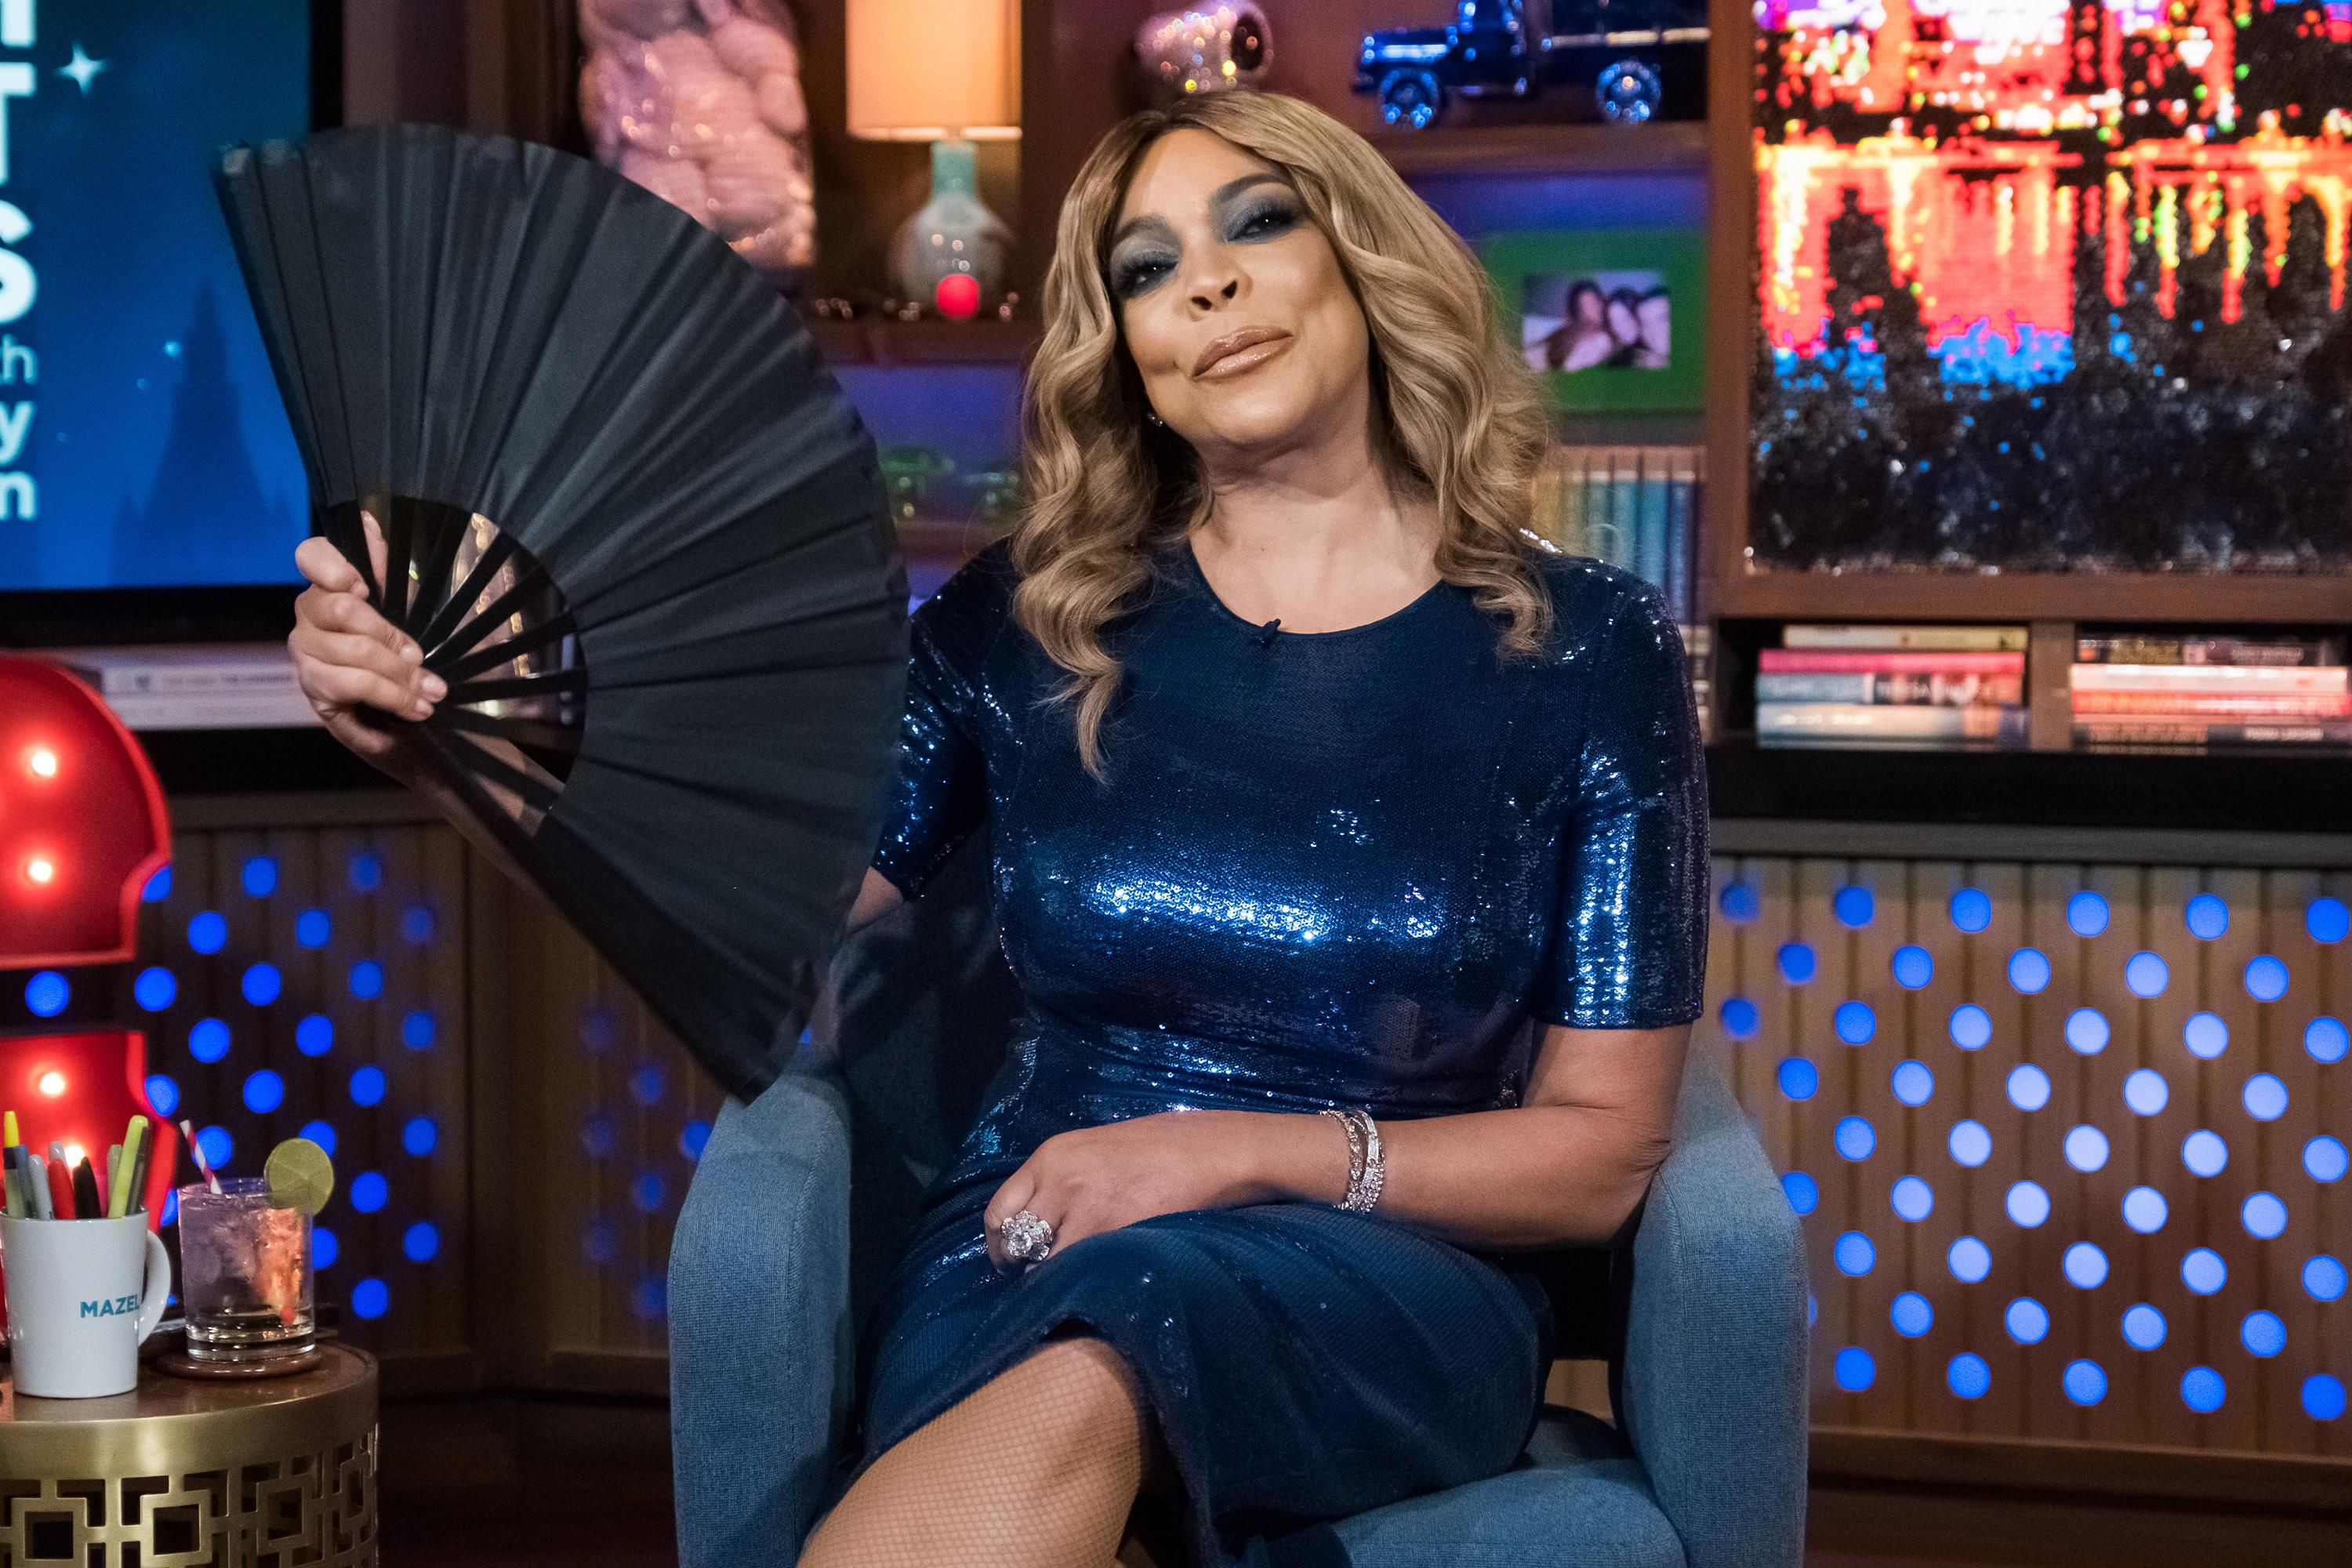 Wendy Williams goes off on audience member after phone rings: 'Get out!'